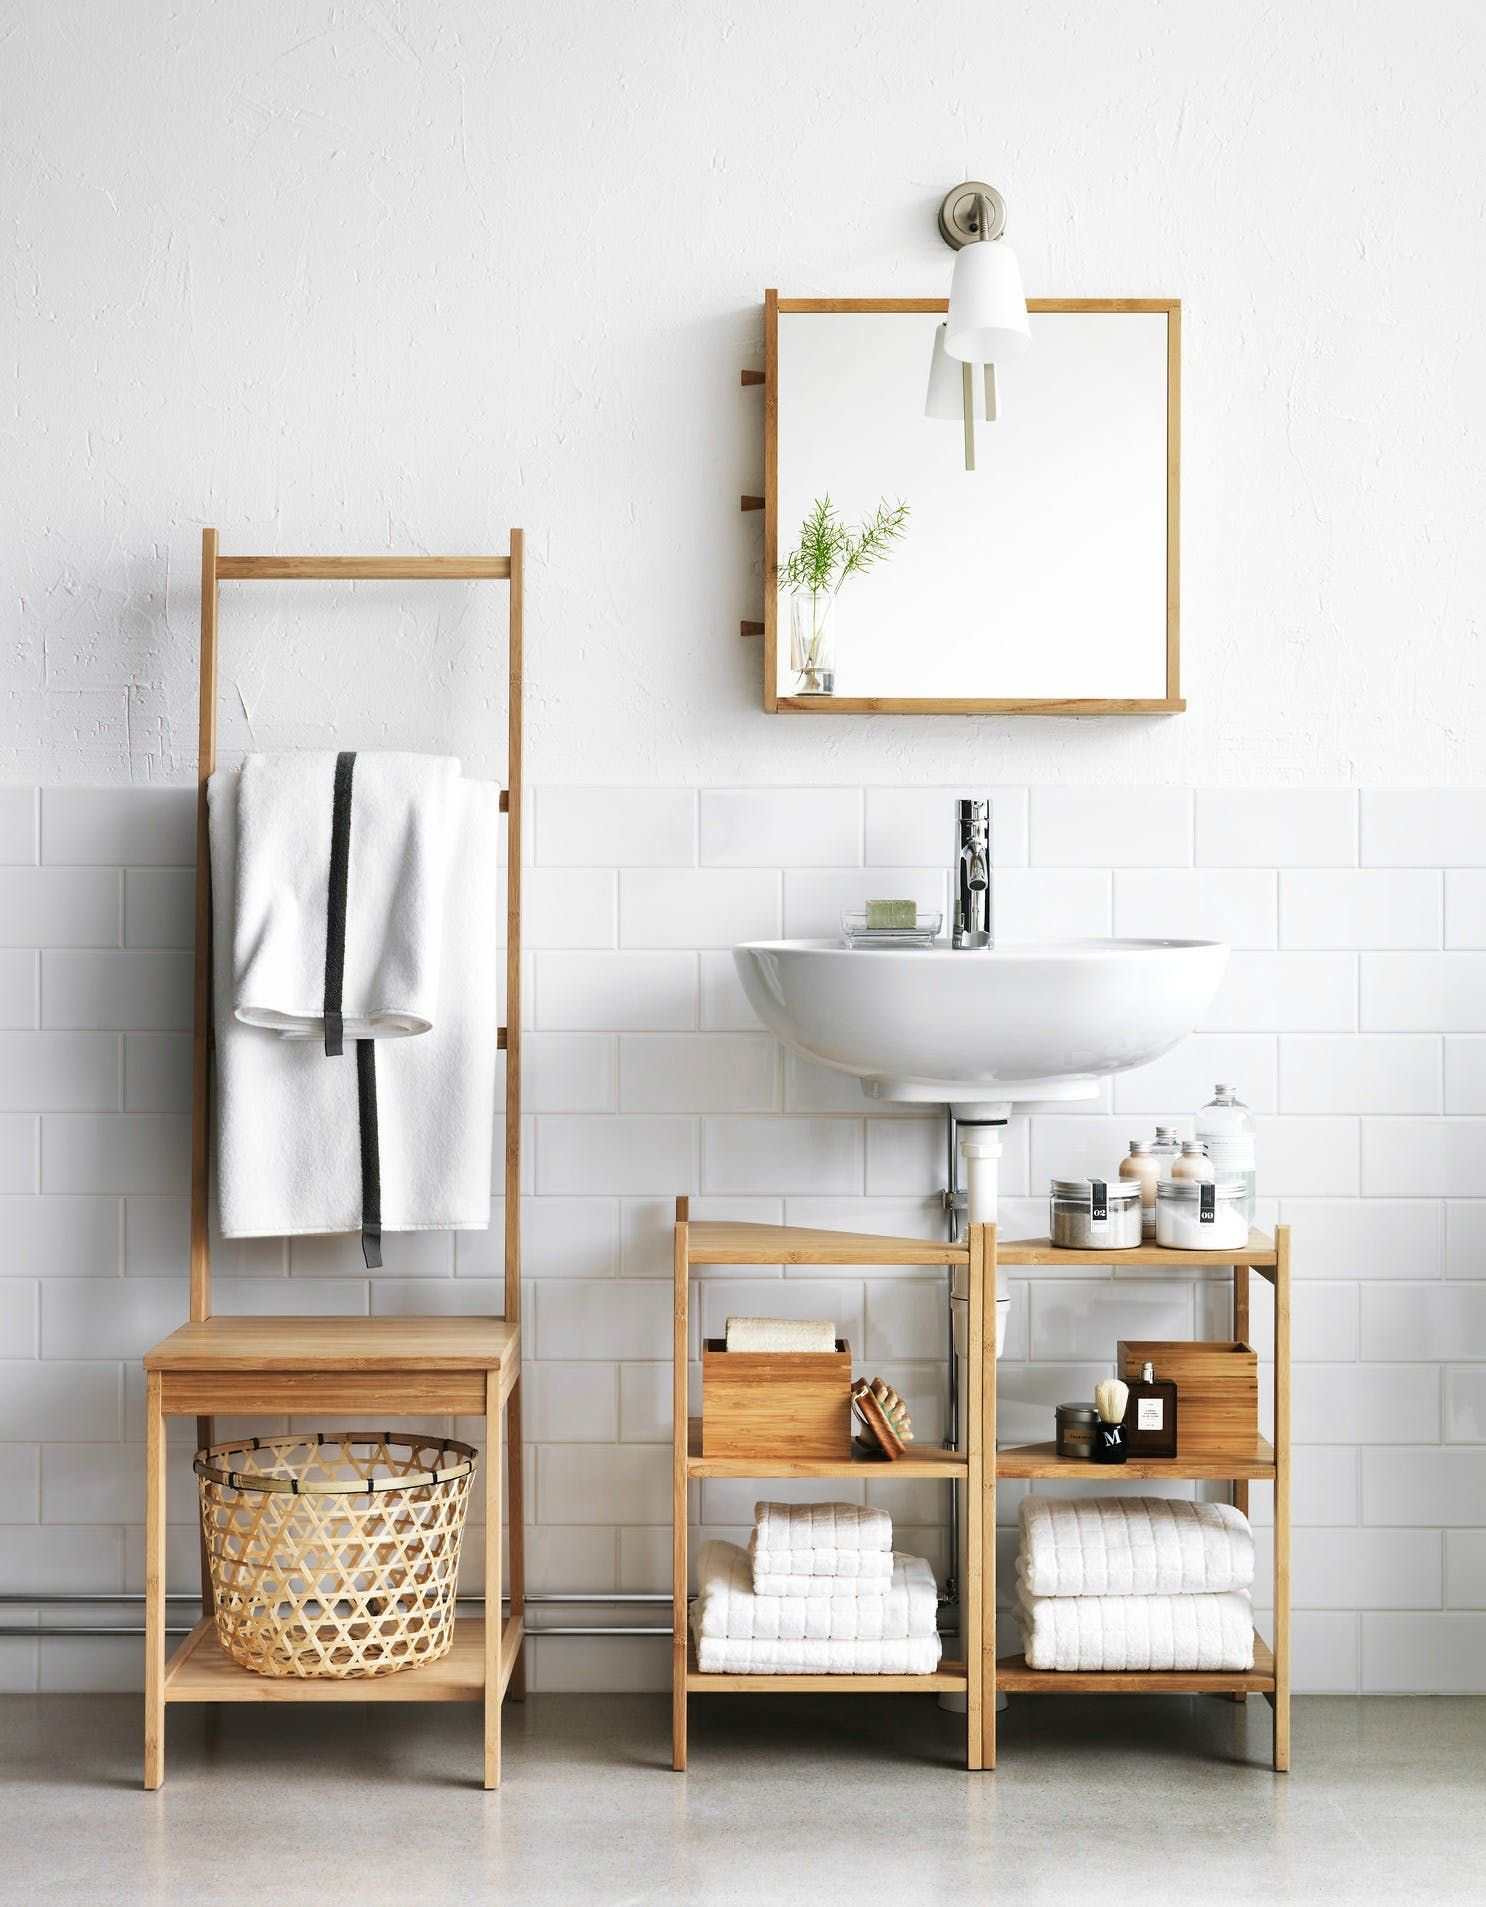 11 Ikea Products Every Renter Should Know About In 2020 Small Bathroom Furniture Ikea Bathroom Accessories Small Bathroom Storage